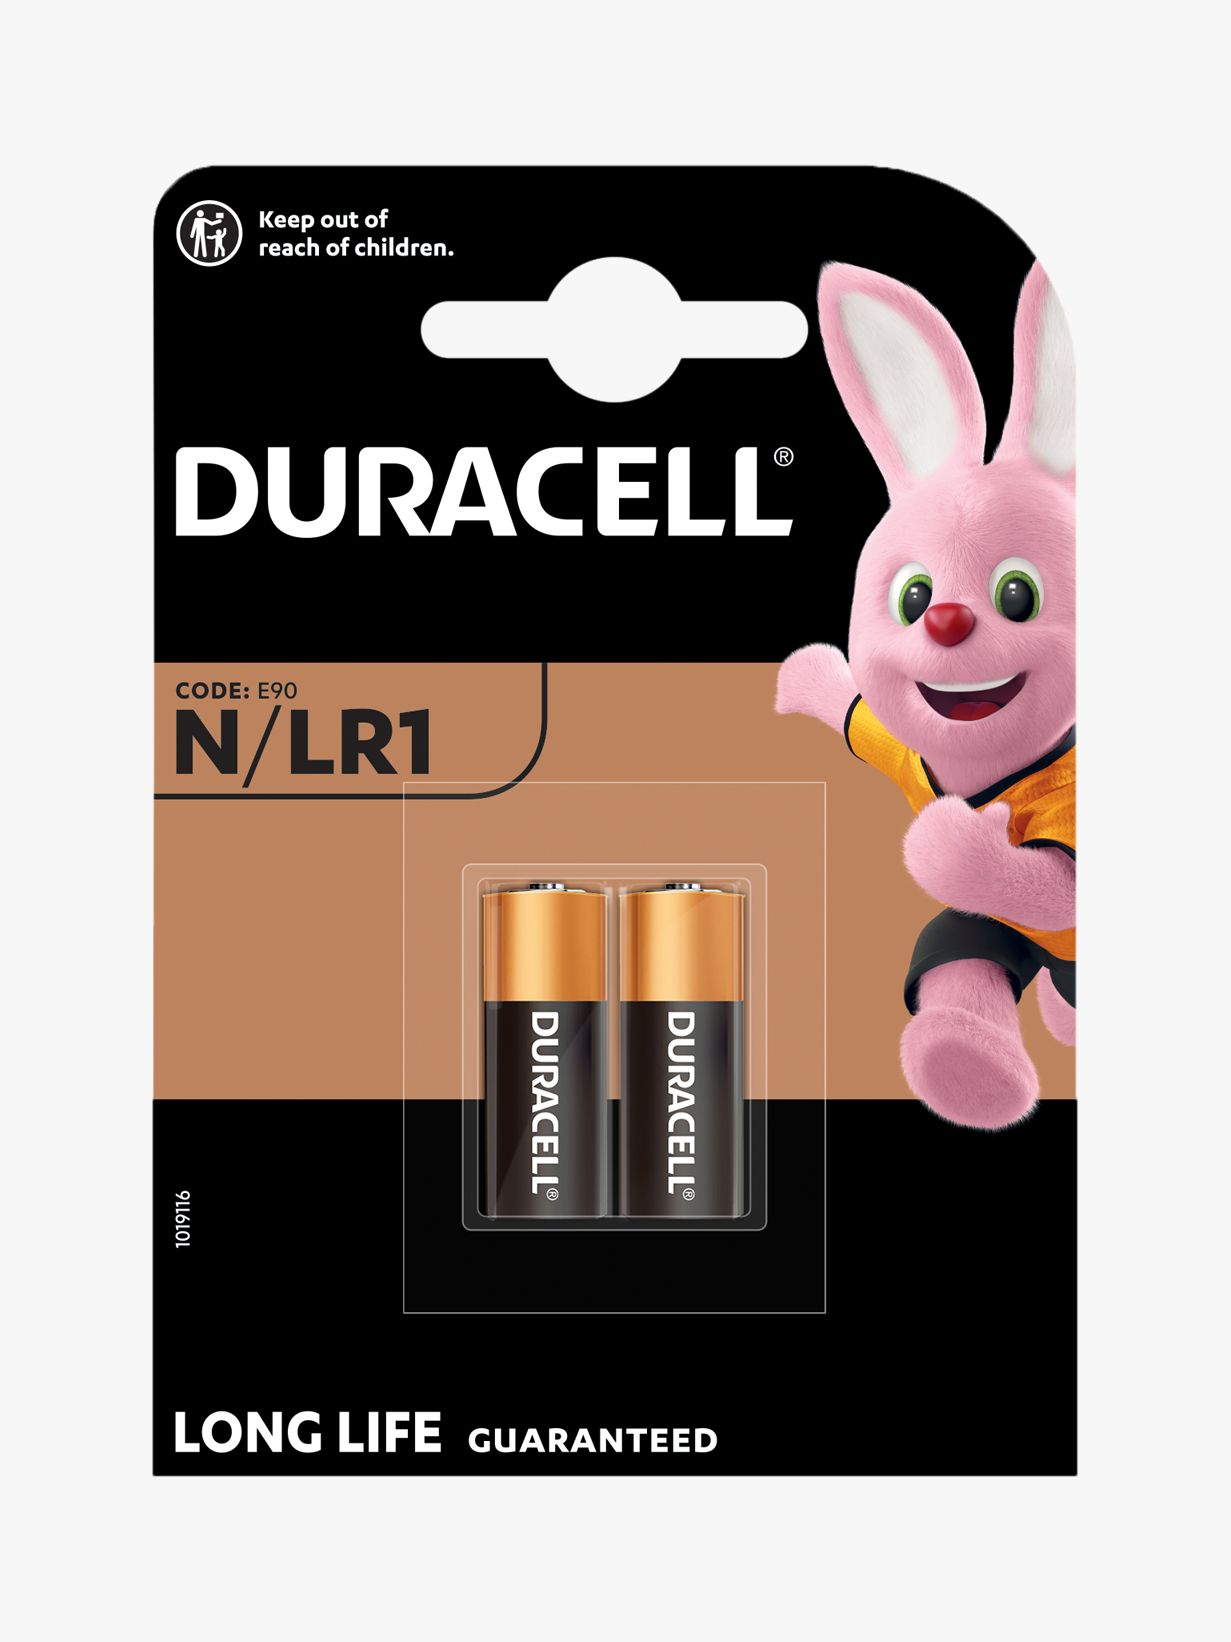 Duracell Duracell Specialty 1.5V Alkaline N Batteries, Pack of 2